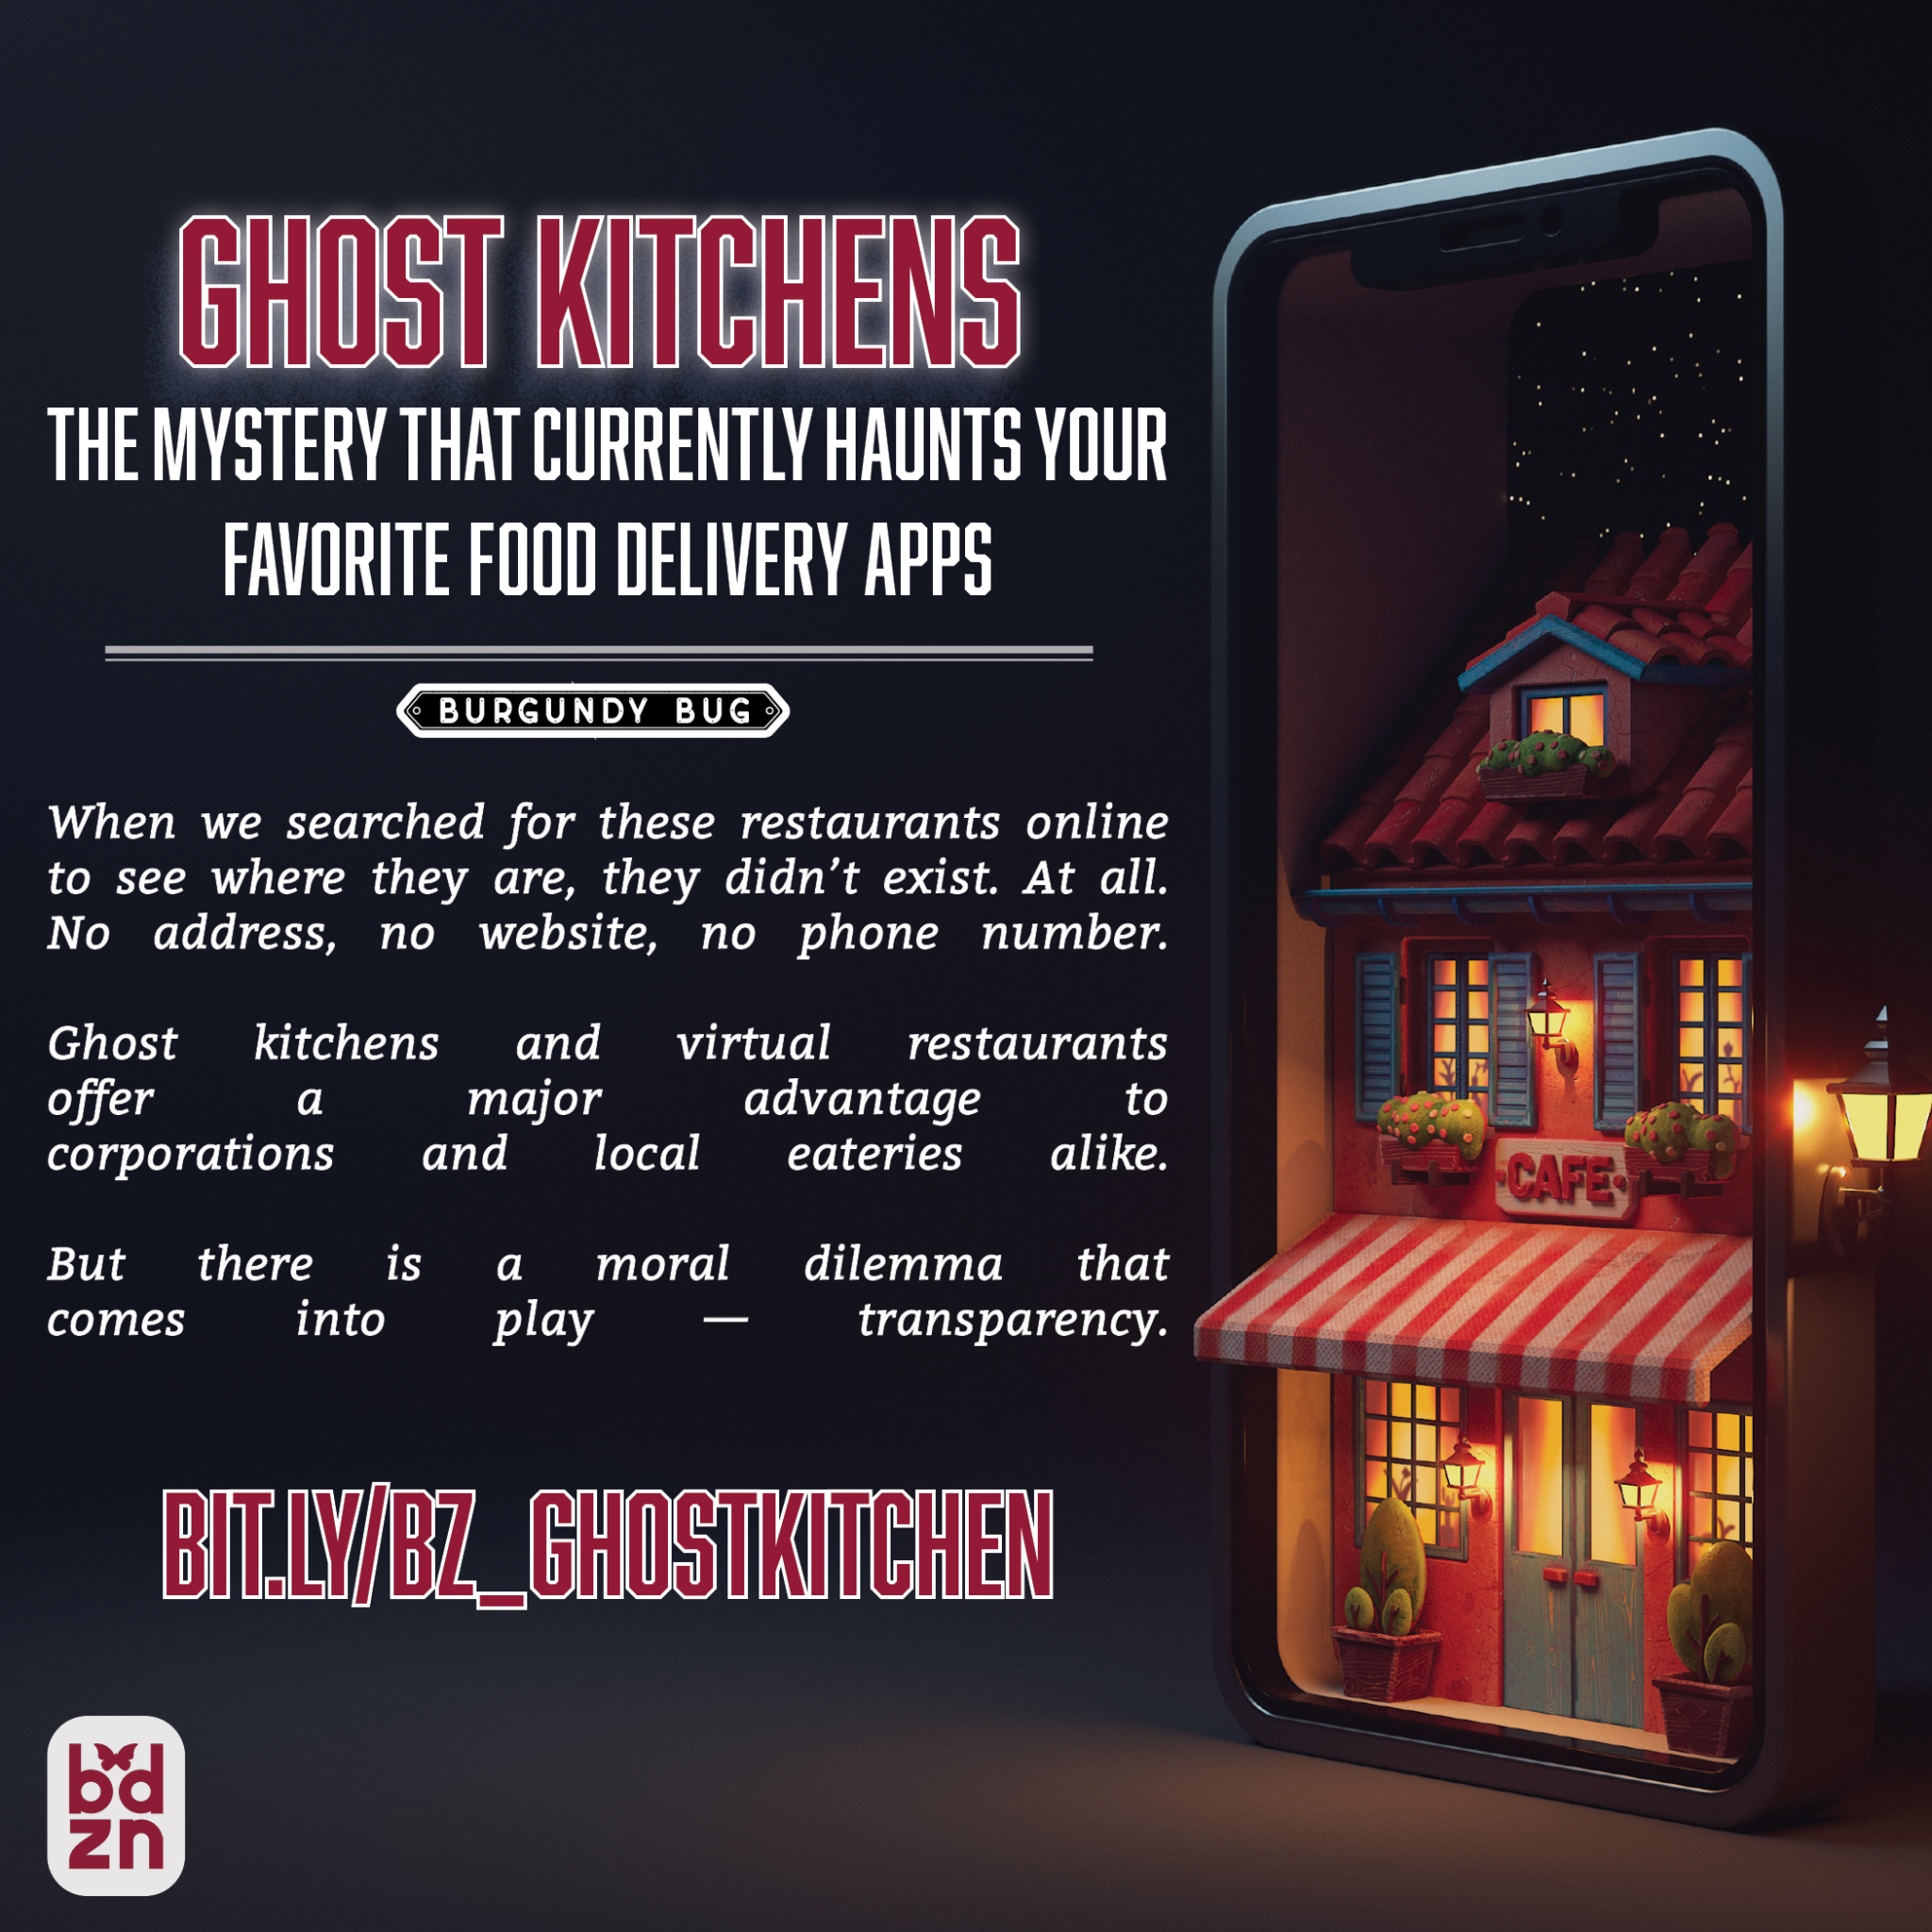 Ghost Kitchens: The Mystery That Currently Haunts Your Favorite Food Delivery Apps